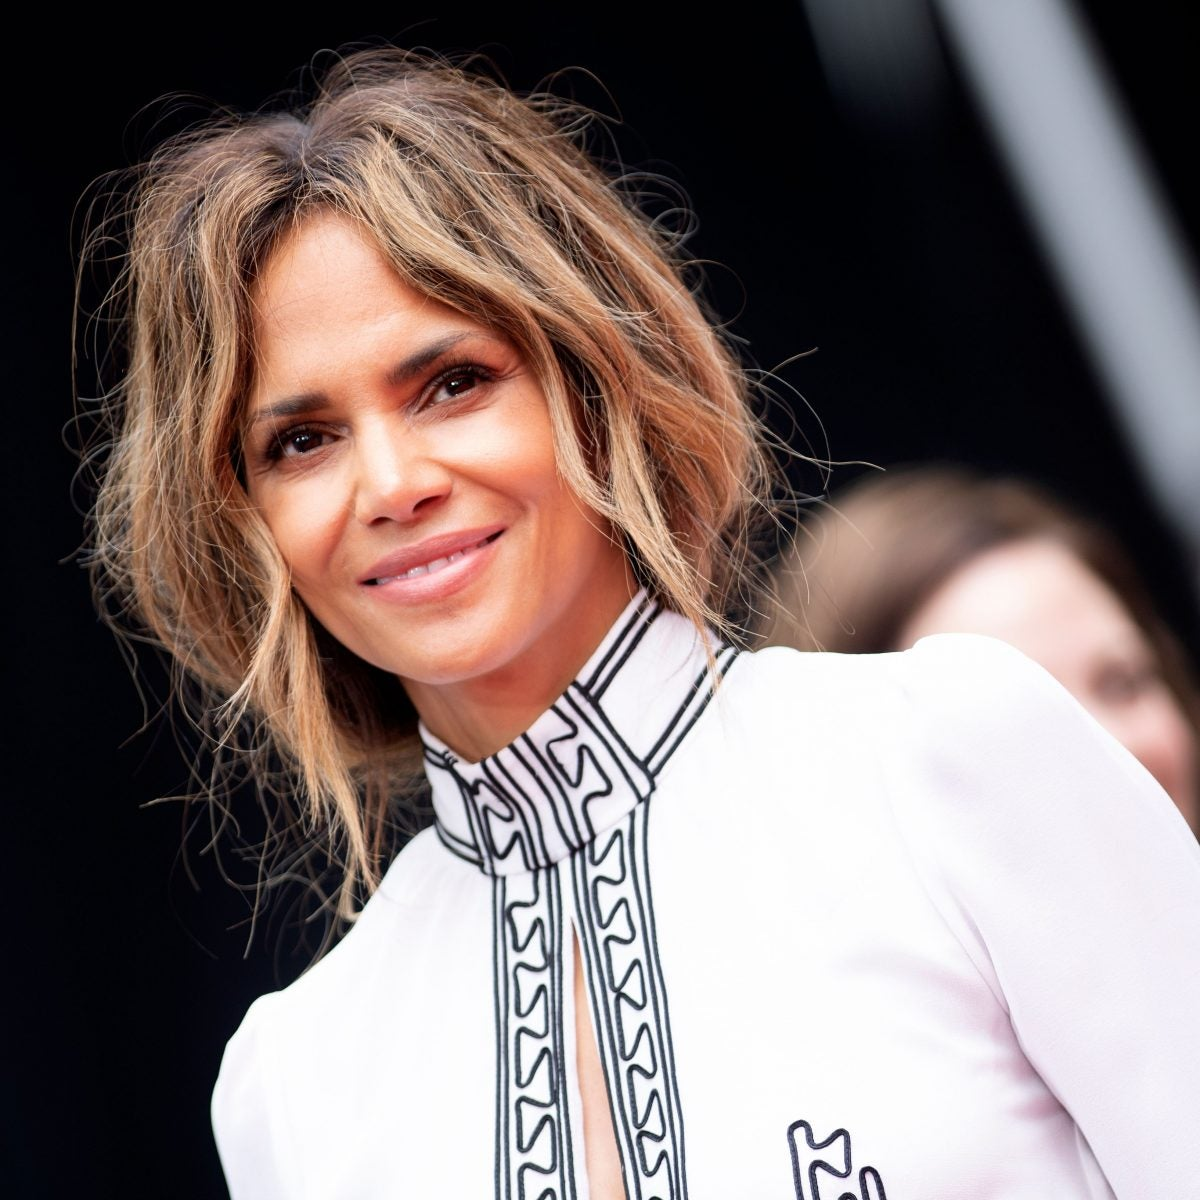 Did Halle Berry Just Reveal The Identity Of Her New Mystery Boo?